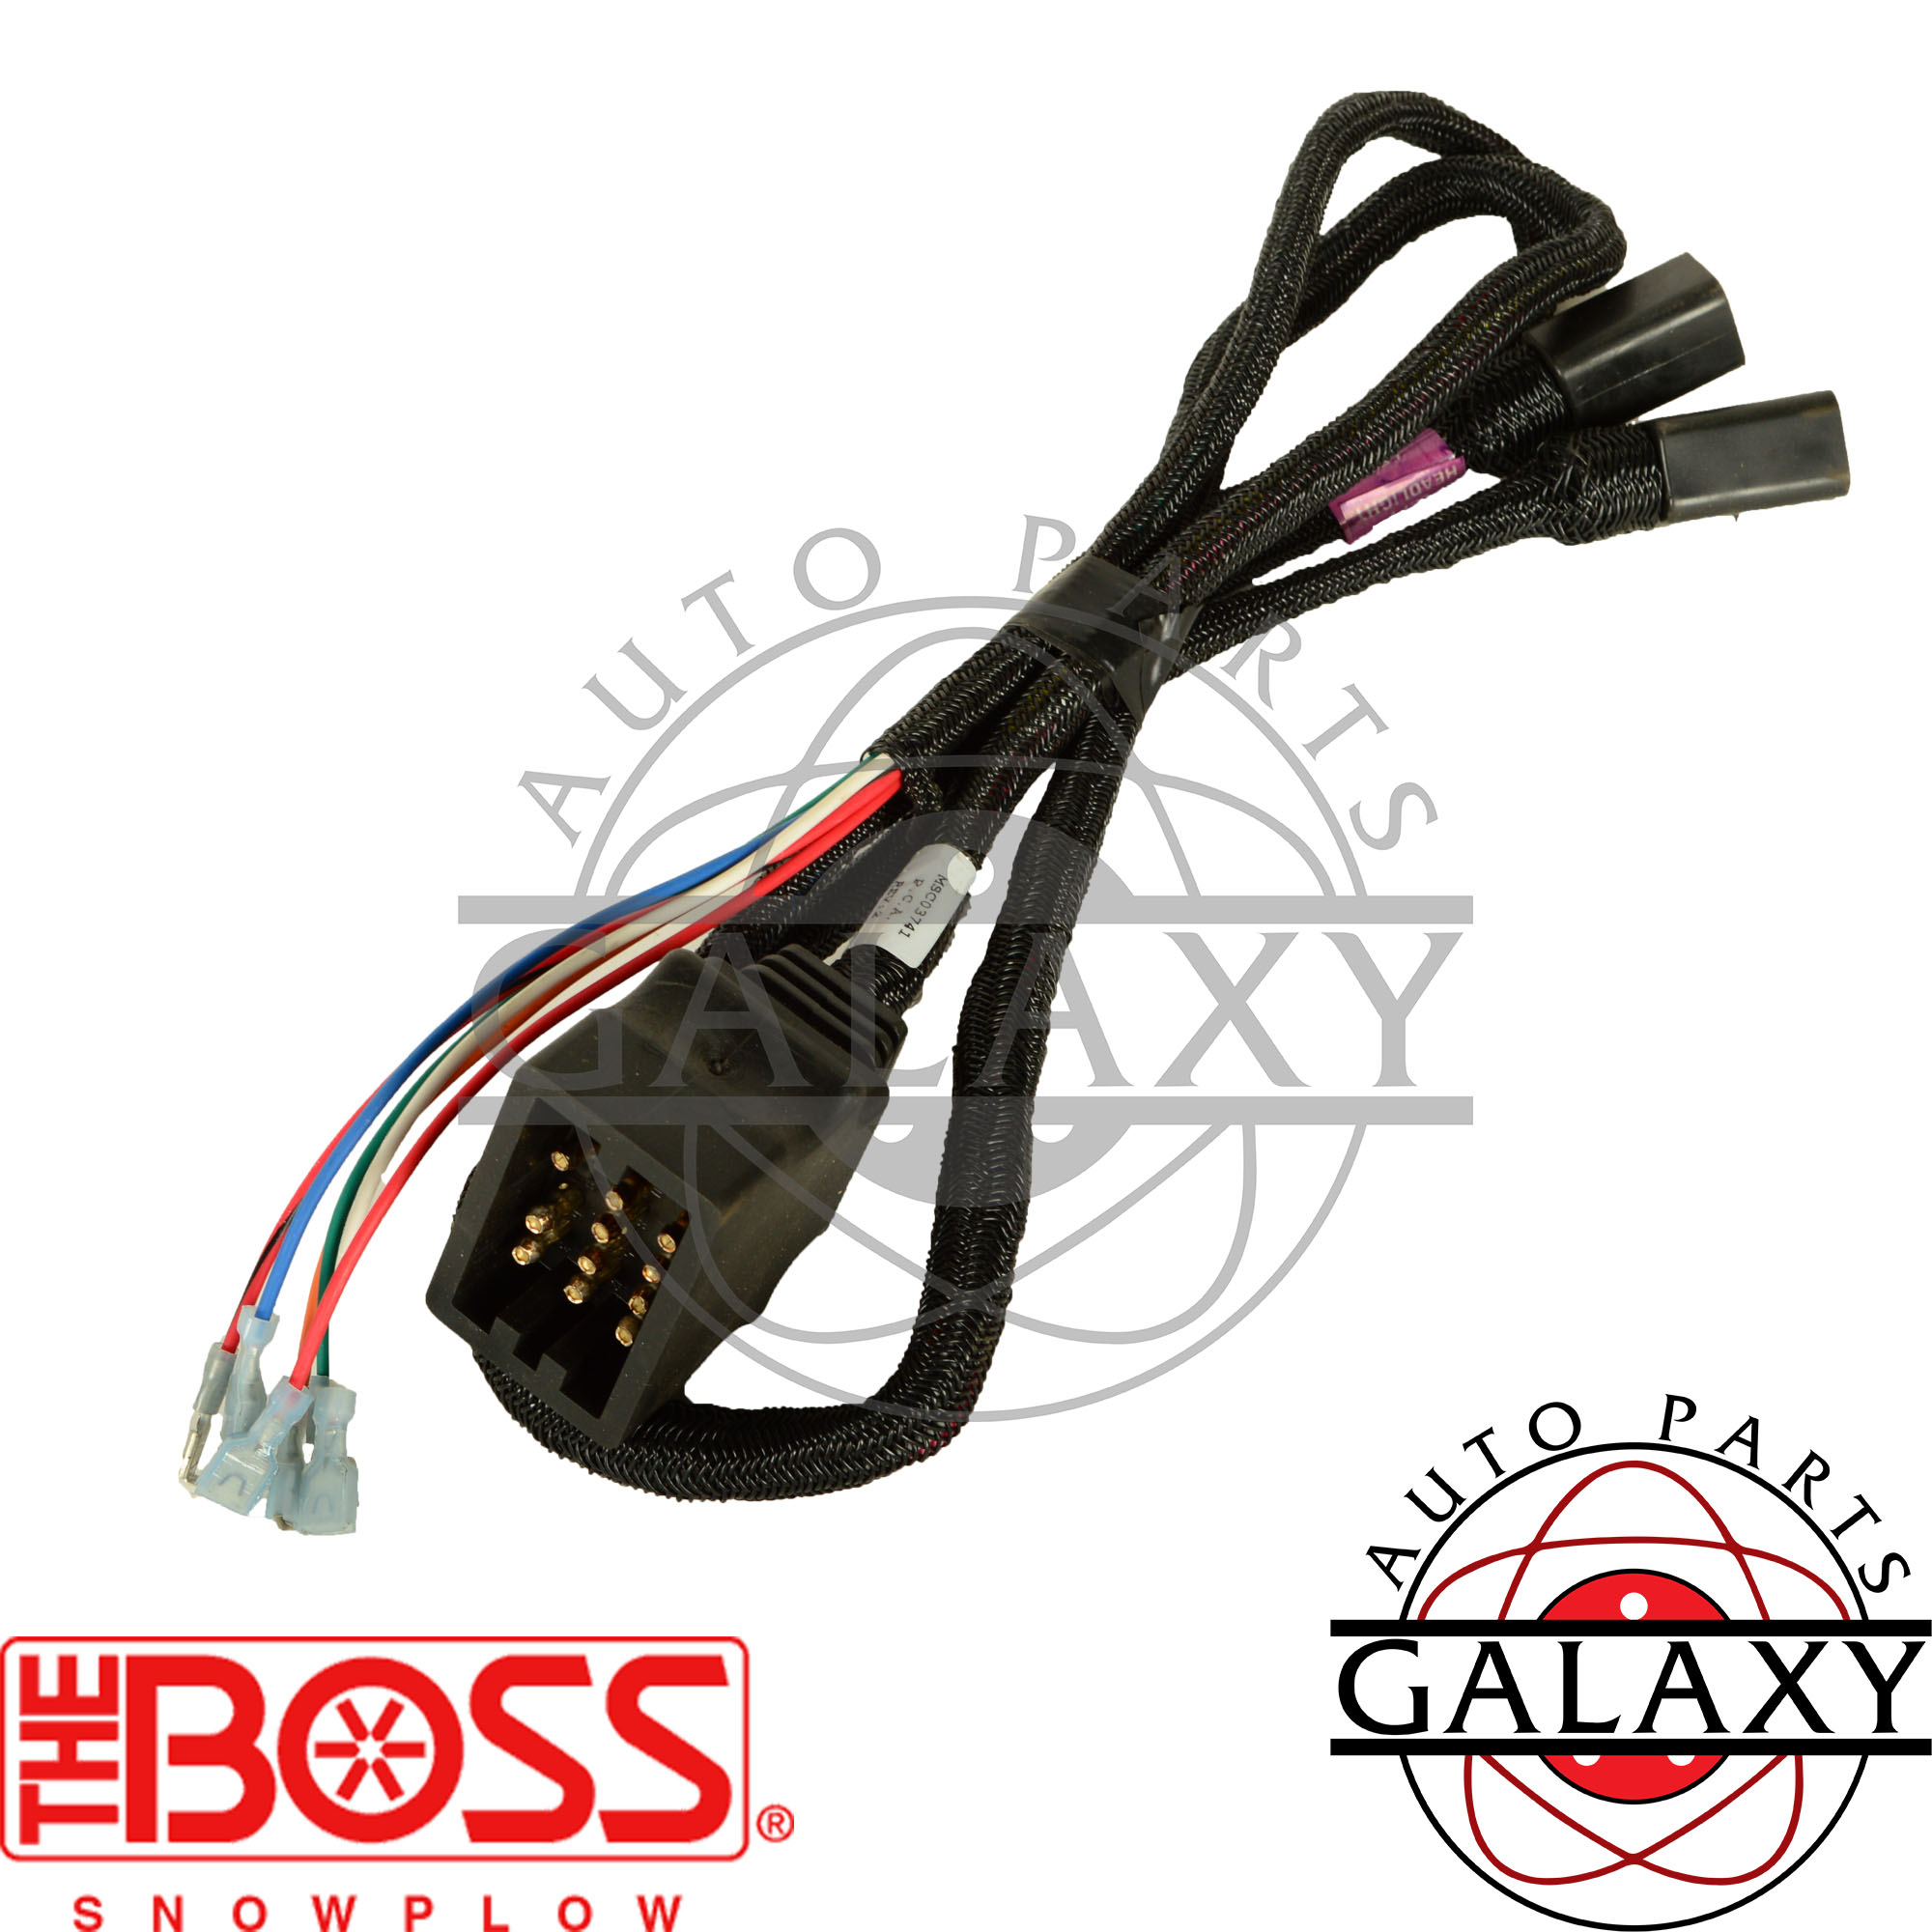 Boss Snow Plow Lights Wiring Harness To Auto Electrical Diagram Snapper Lt160h42cbv2